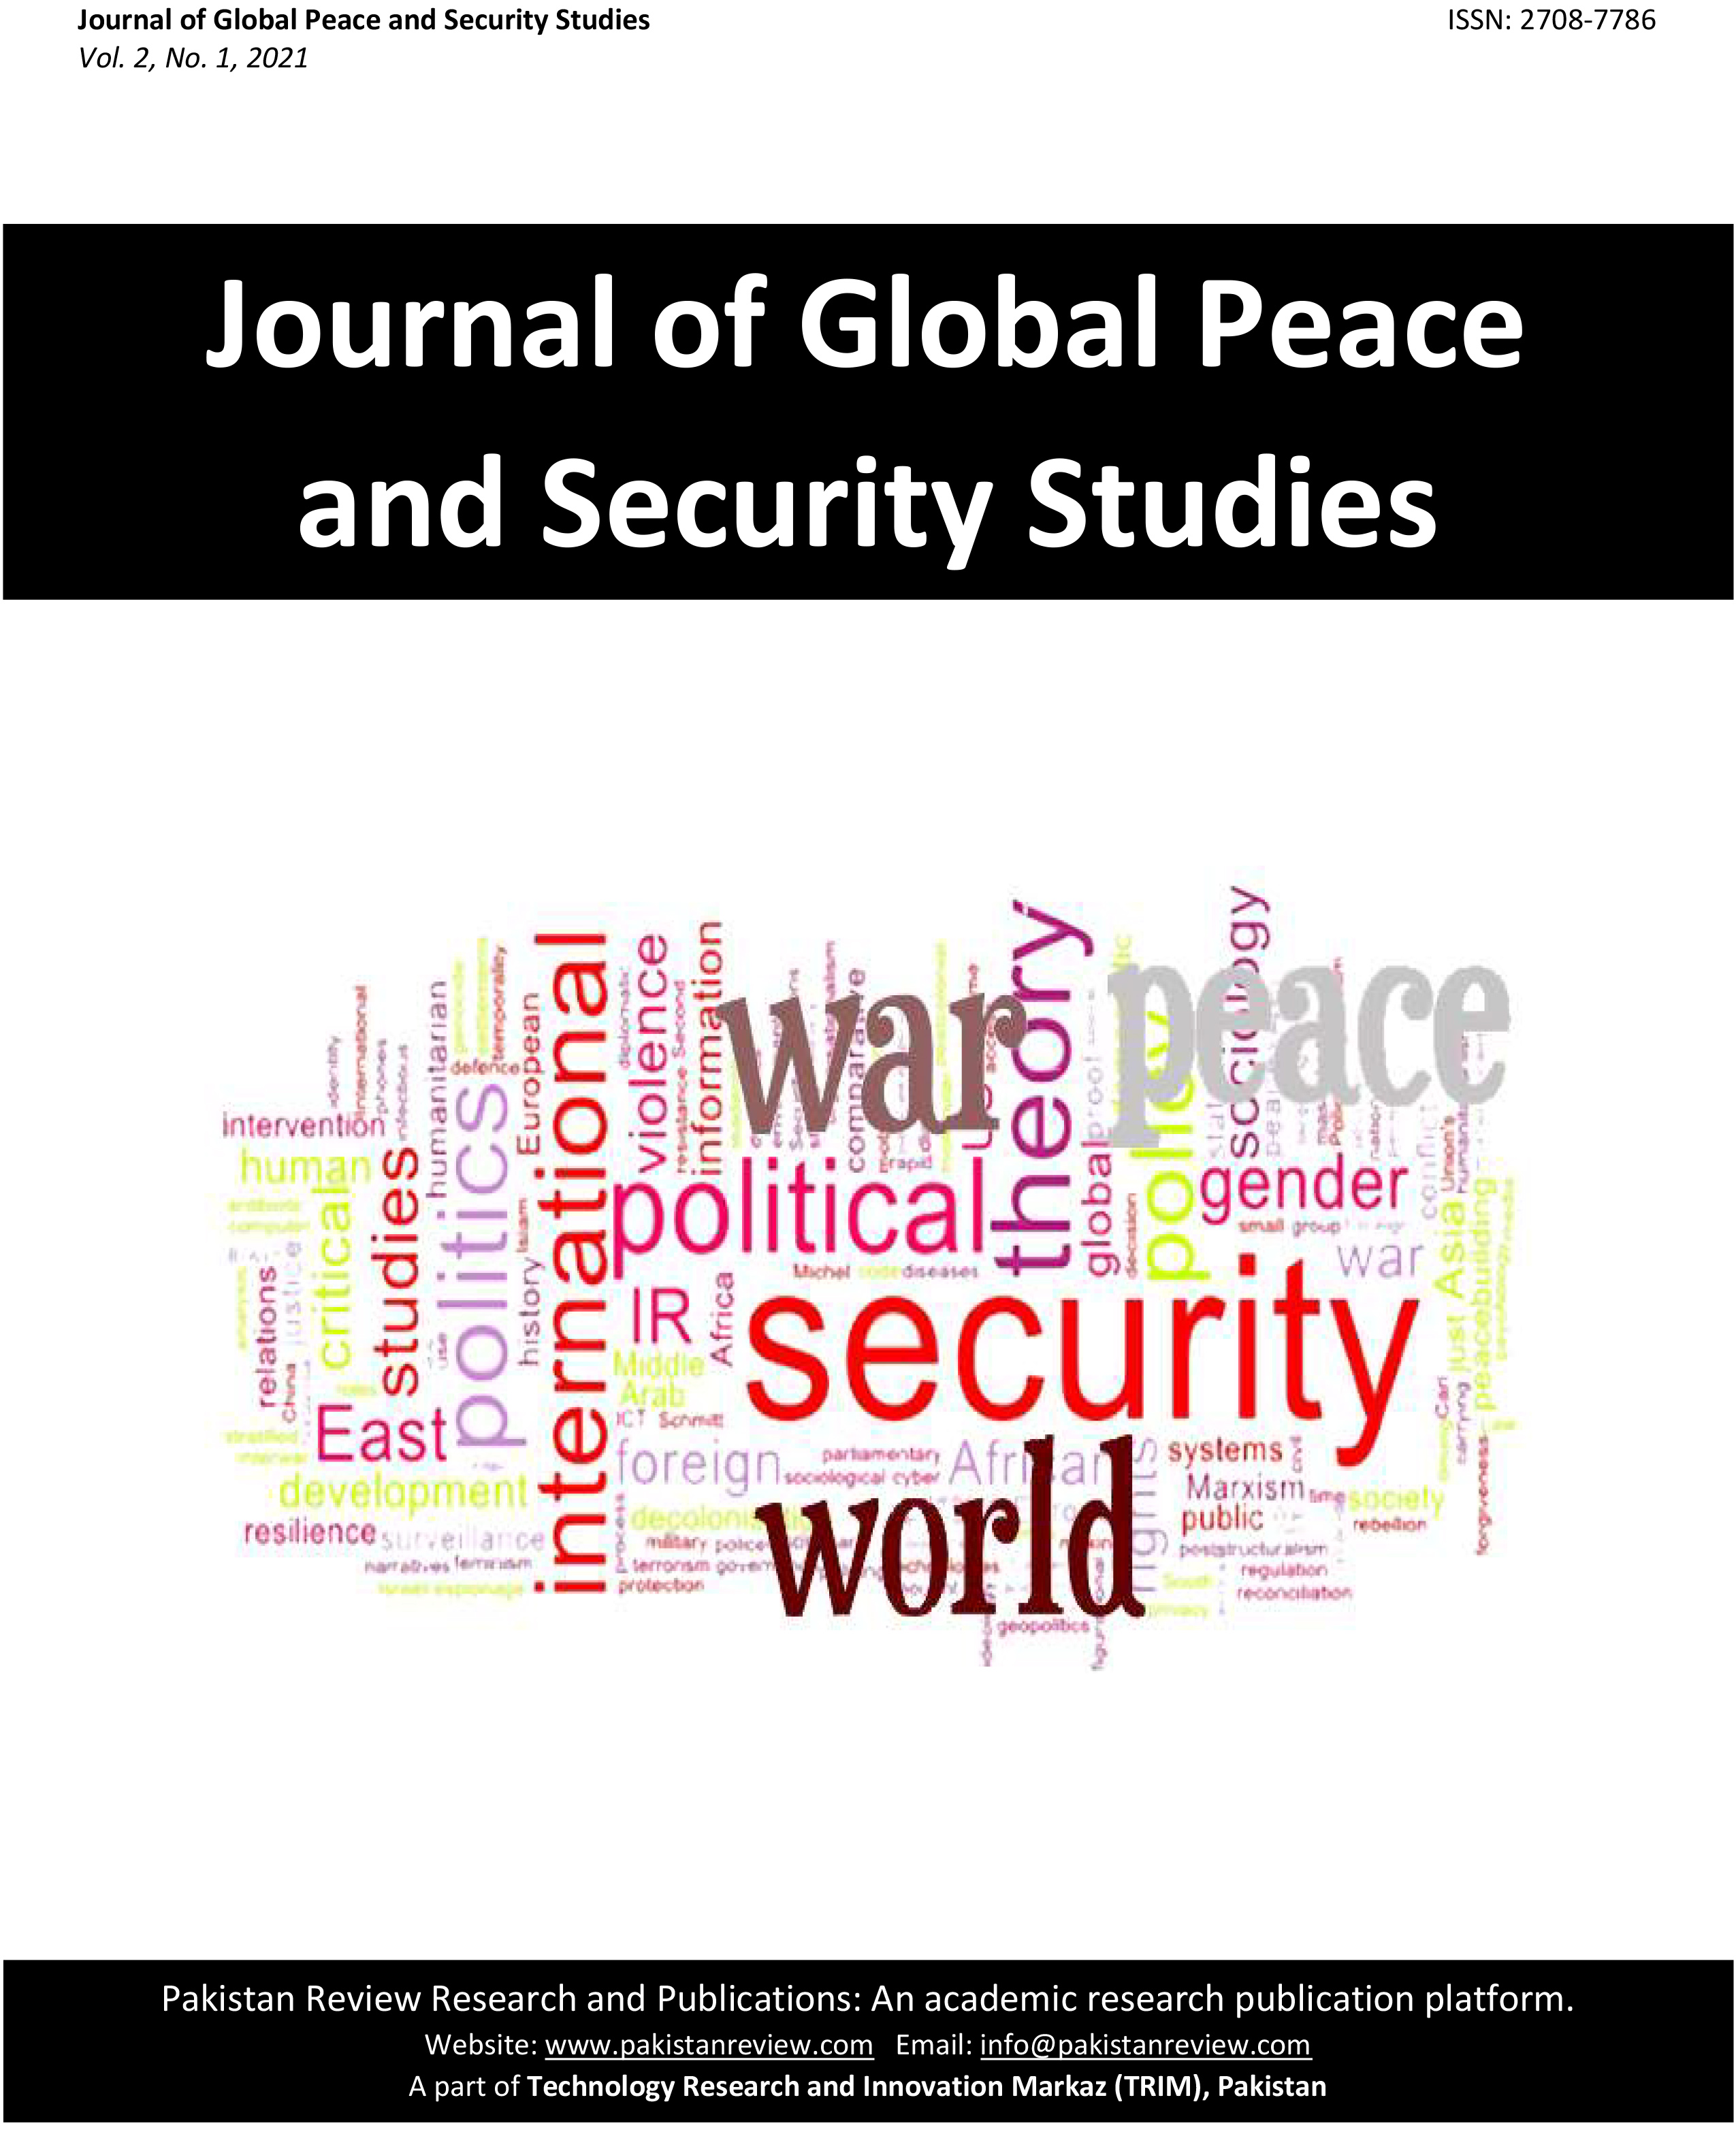 View Vol. 2 No. 1 (2021): Journal of Global Peace and Security Studies (JGPSS)